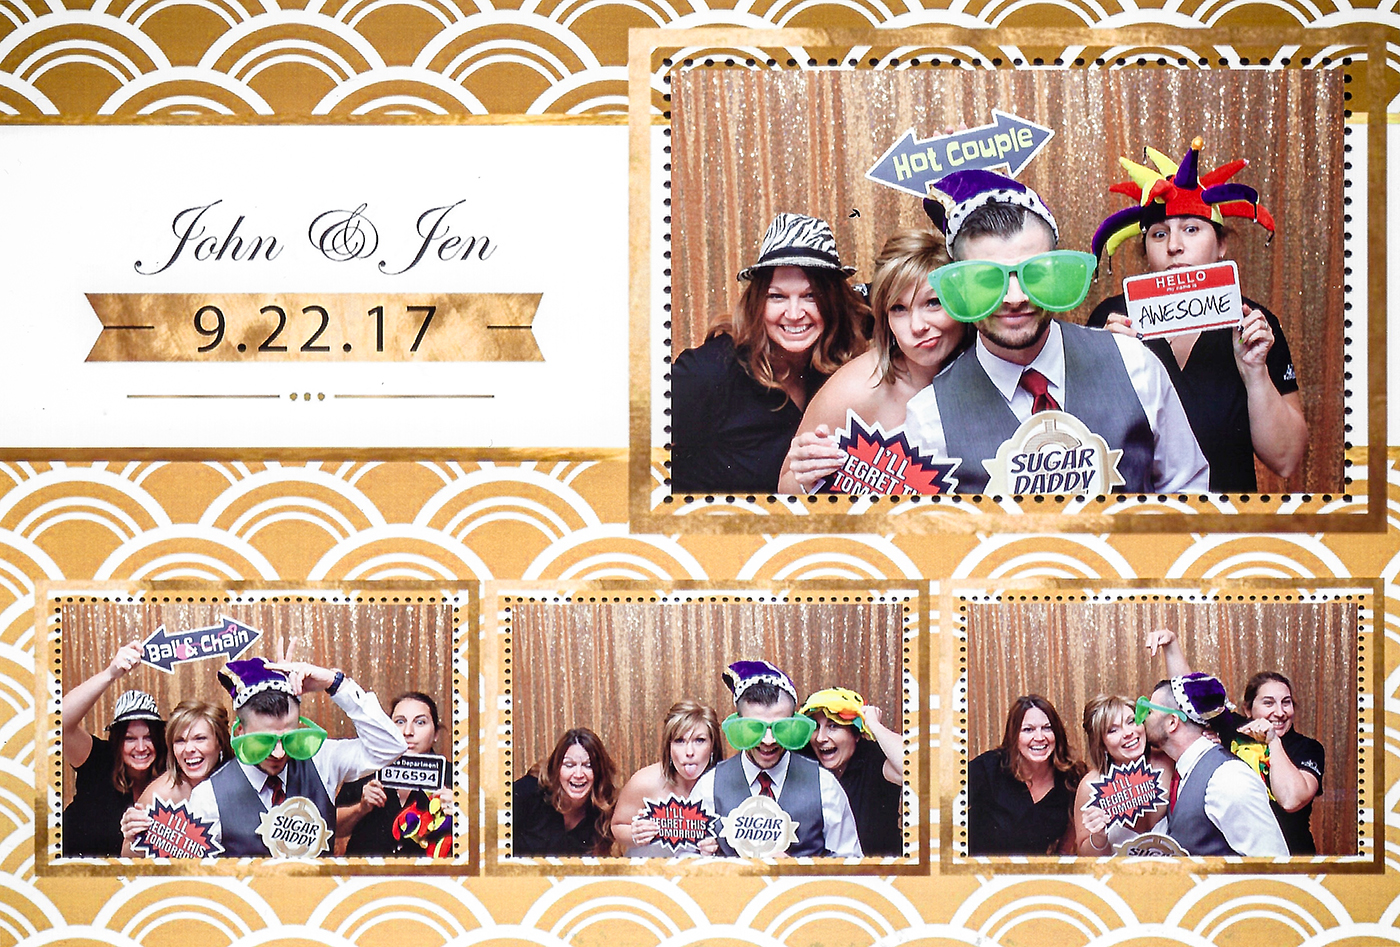 All Occasions Photography Albany NY - Wedding Photography Funny Photographers Silly Props